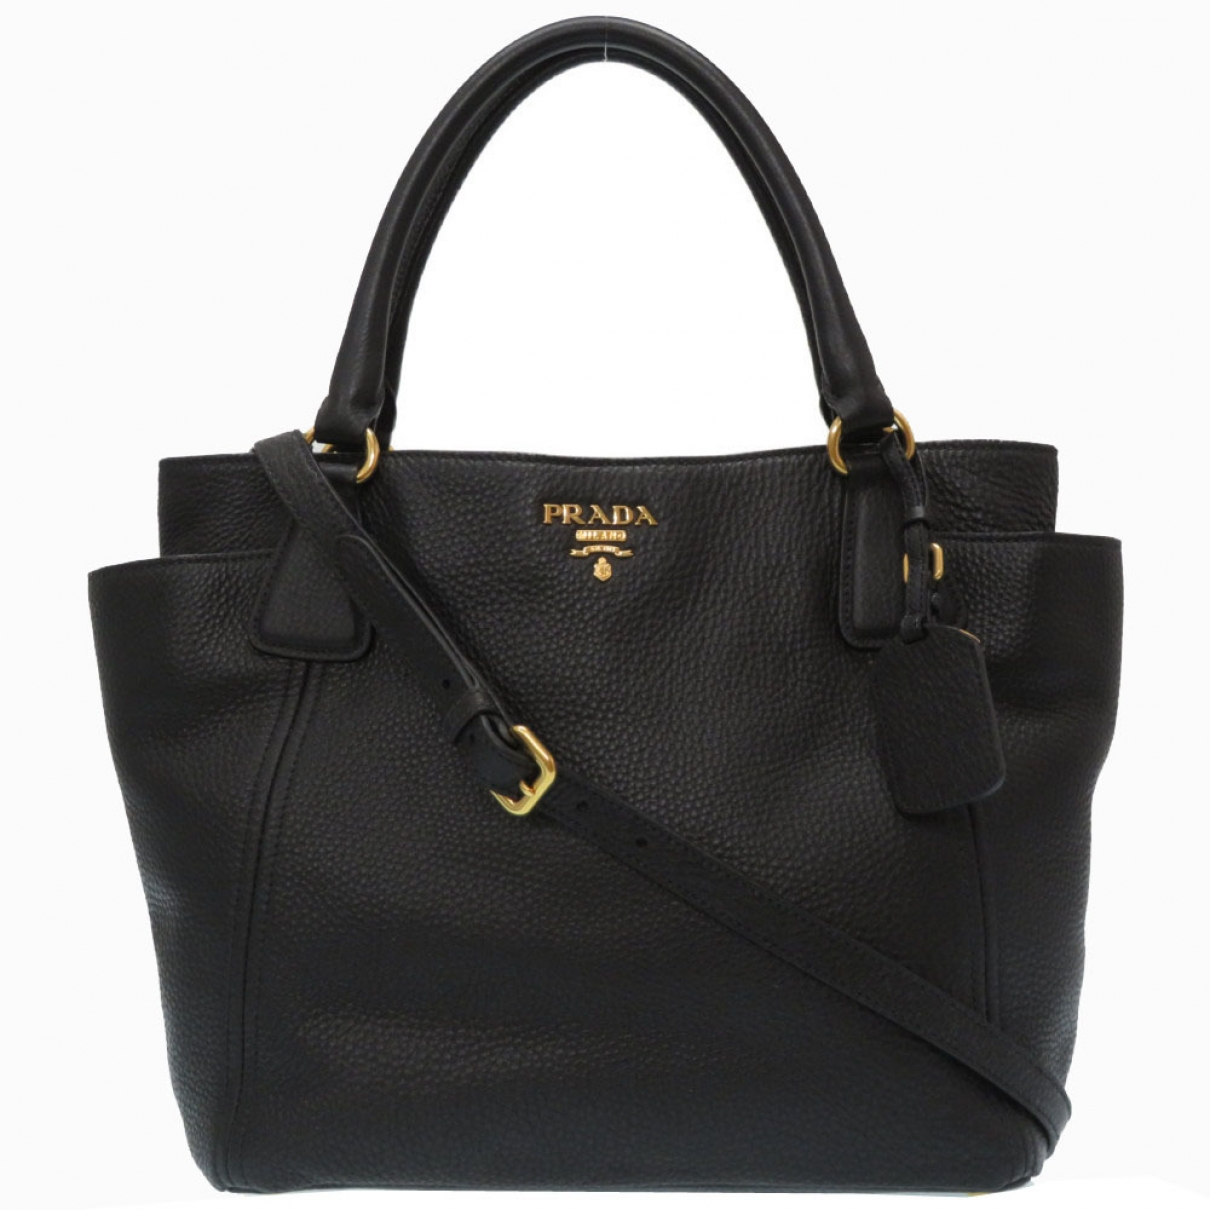 Prada \N Black Leather handbag for Women \N